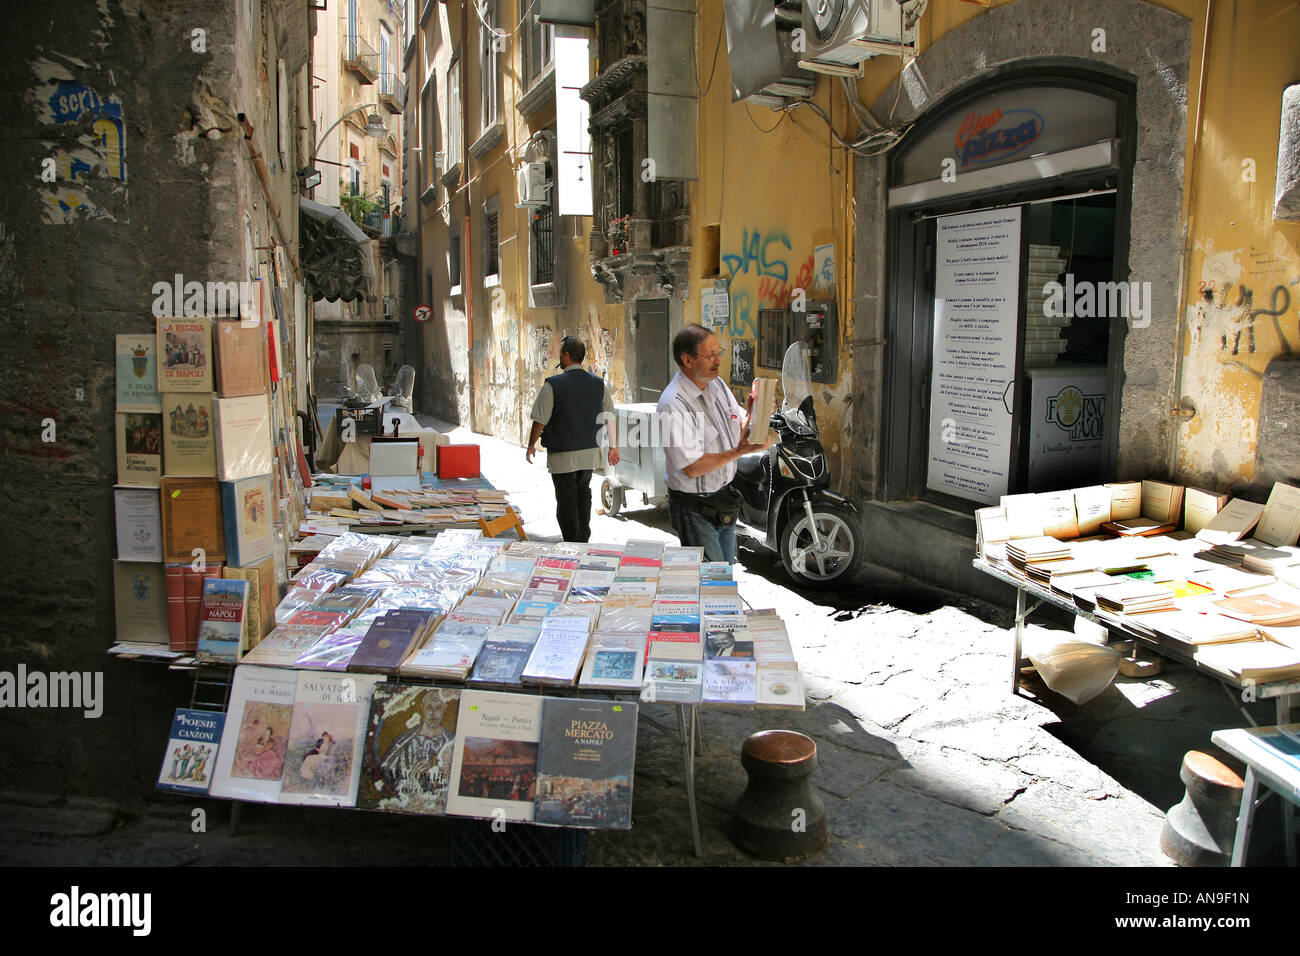 A book seller in the old quarter of Naples Italy - Stock Image